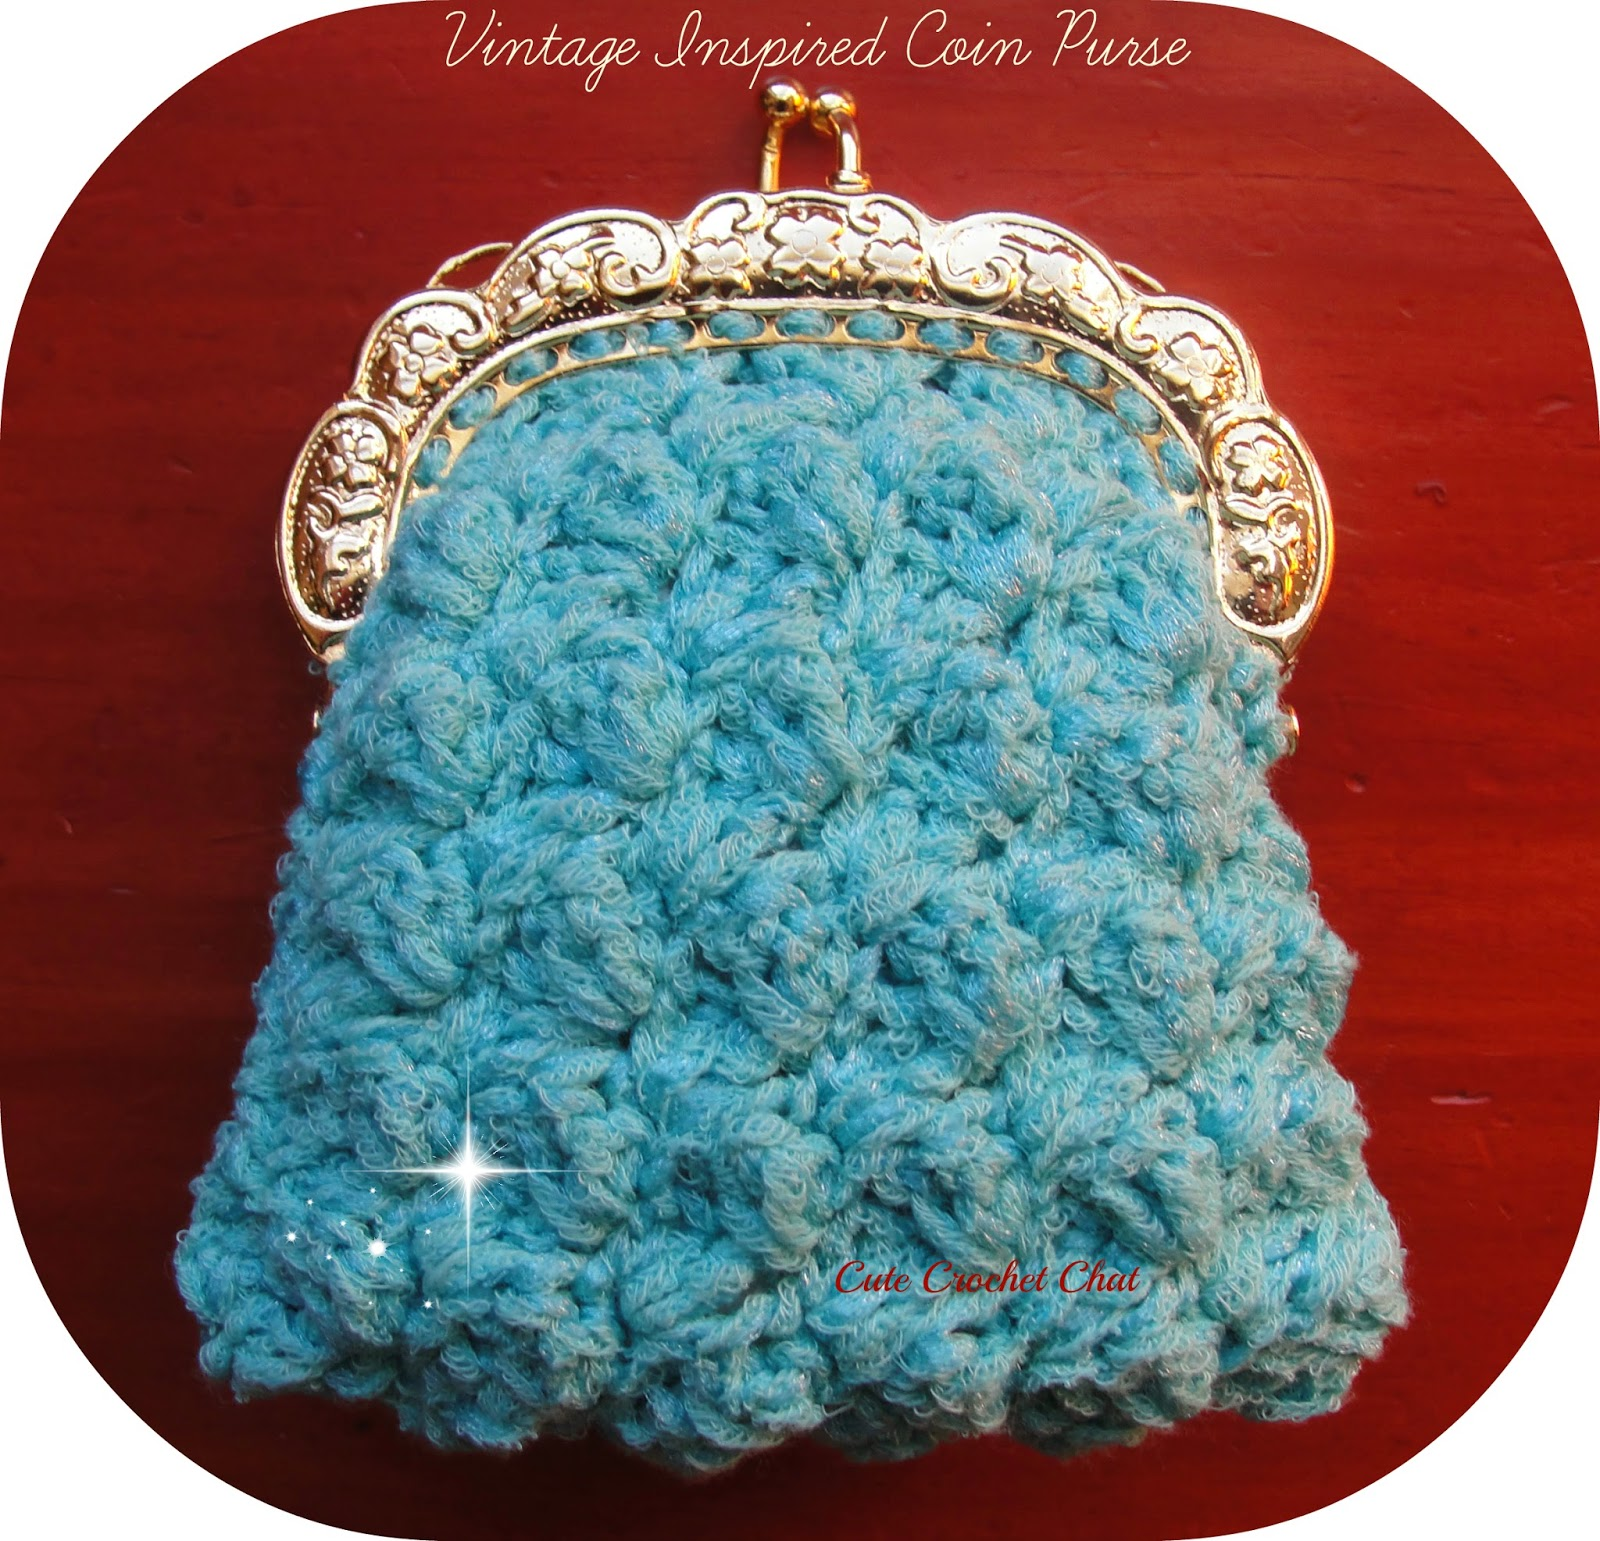 Crochet Coin Purse Pattern : Cute Crochet Chat: Vintage Inspired Coin Purse Free Crochet Pattern